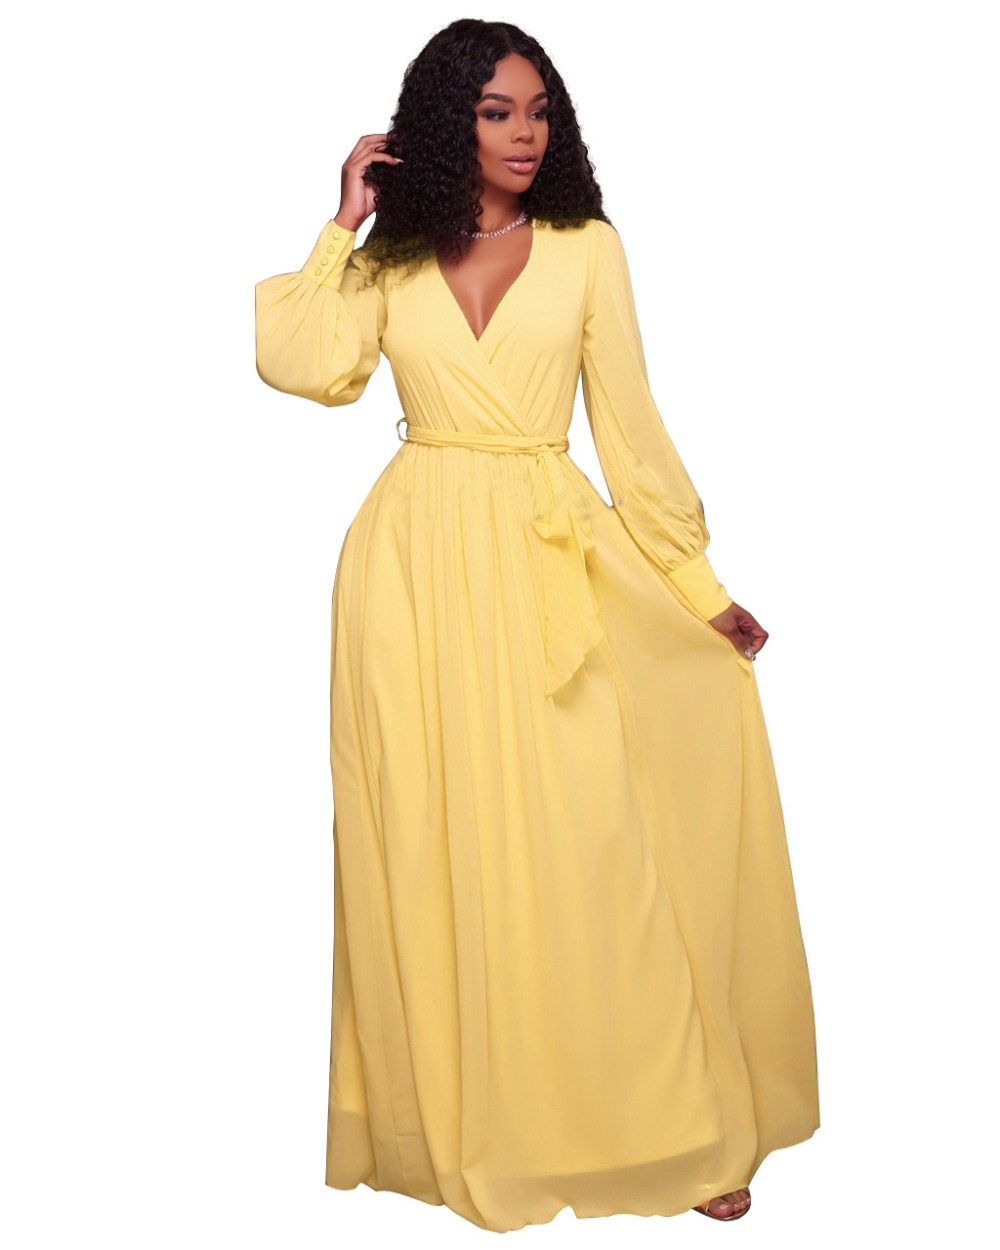 Aletterhin Long Sleeve Sashes Maxi Dresses Women Elegant Yellow Pink V Neck Ruffles A Line Loose